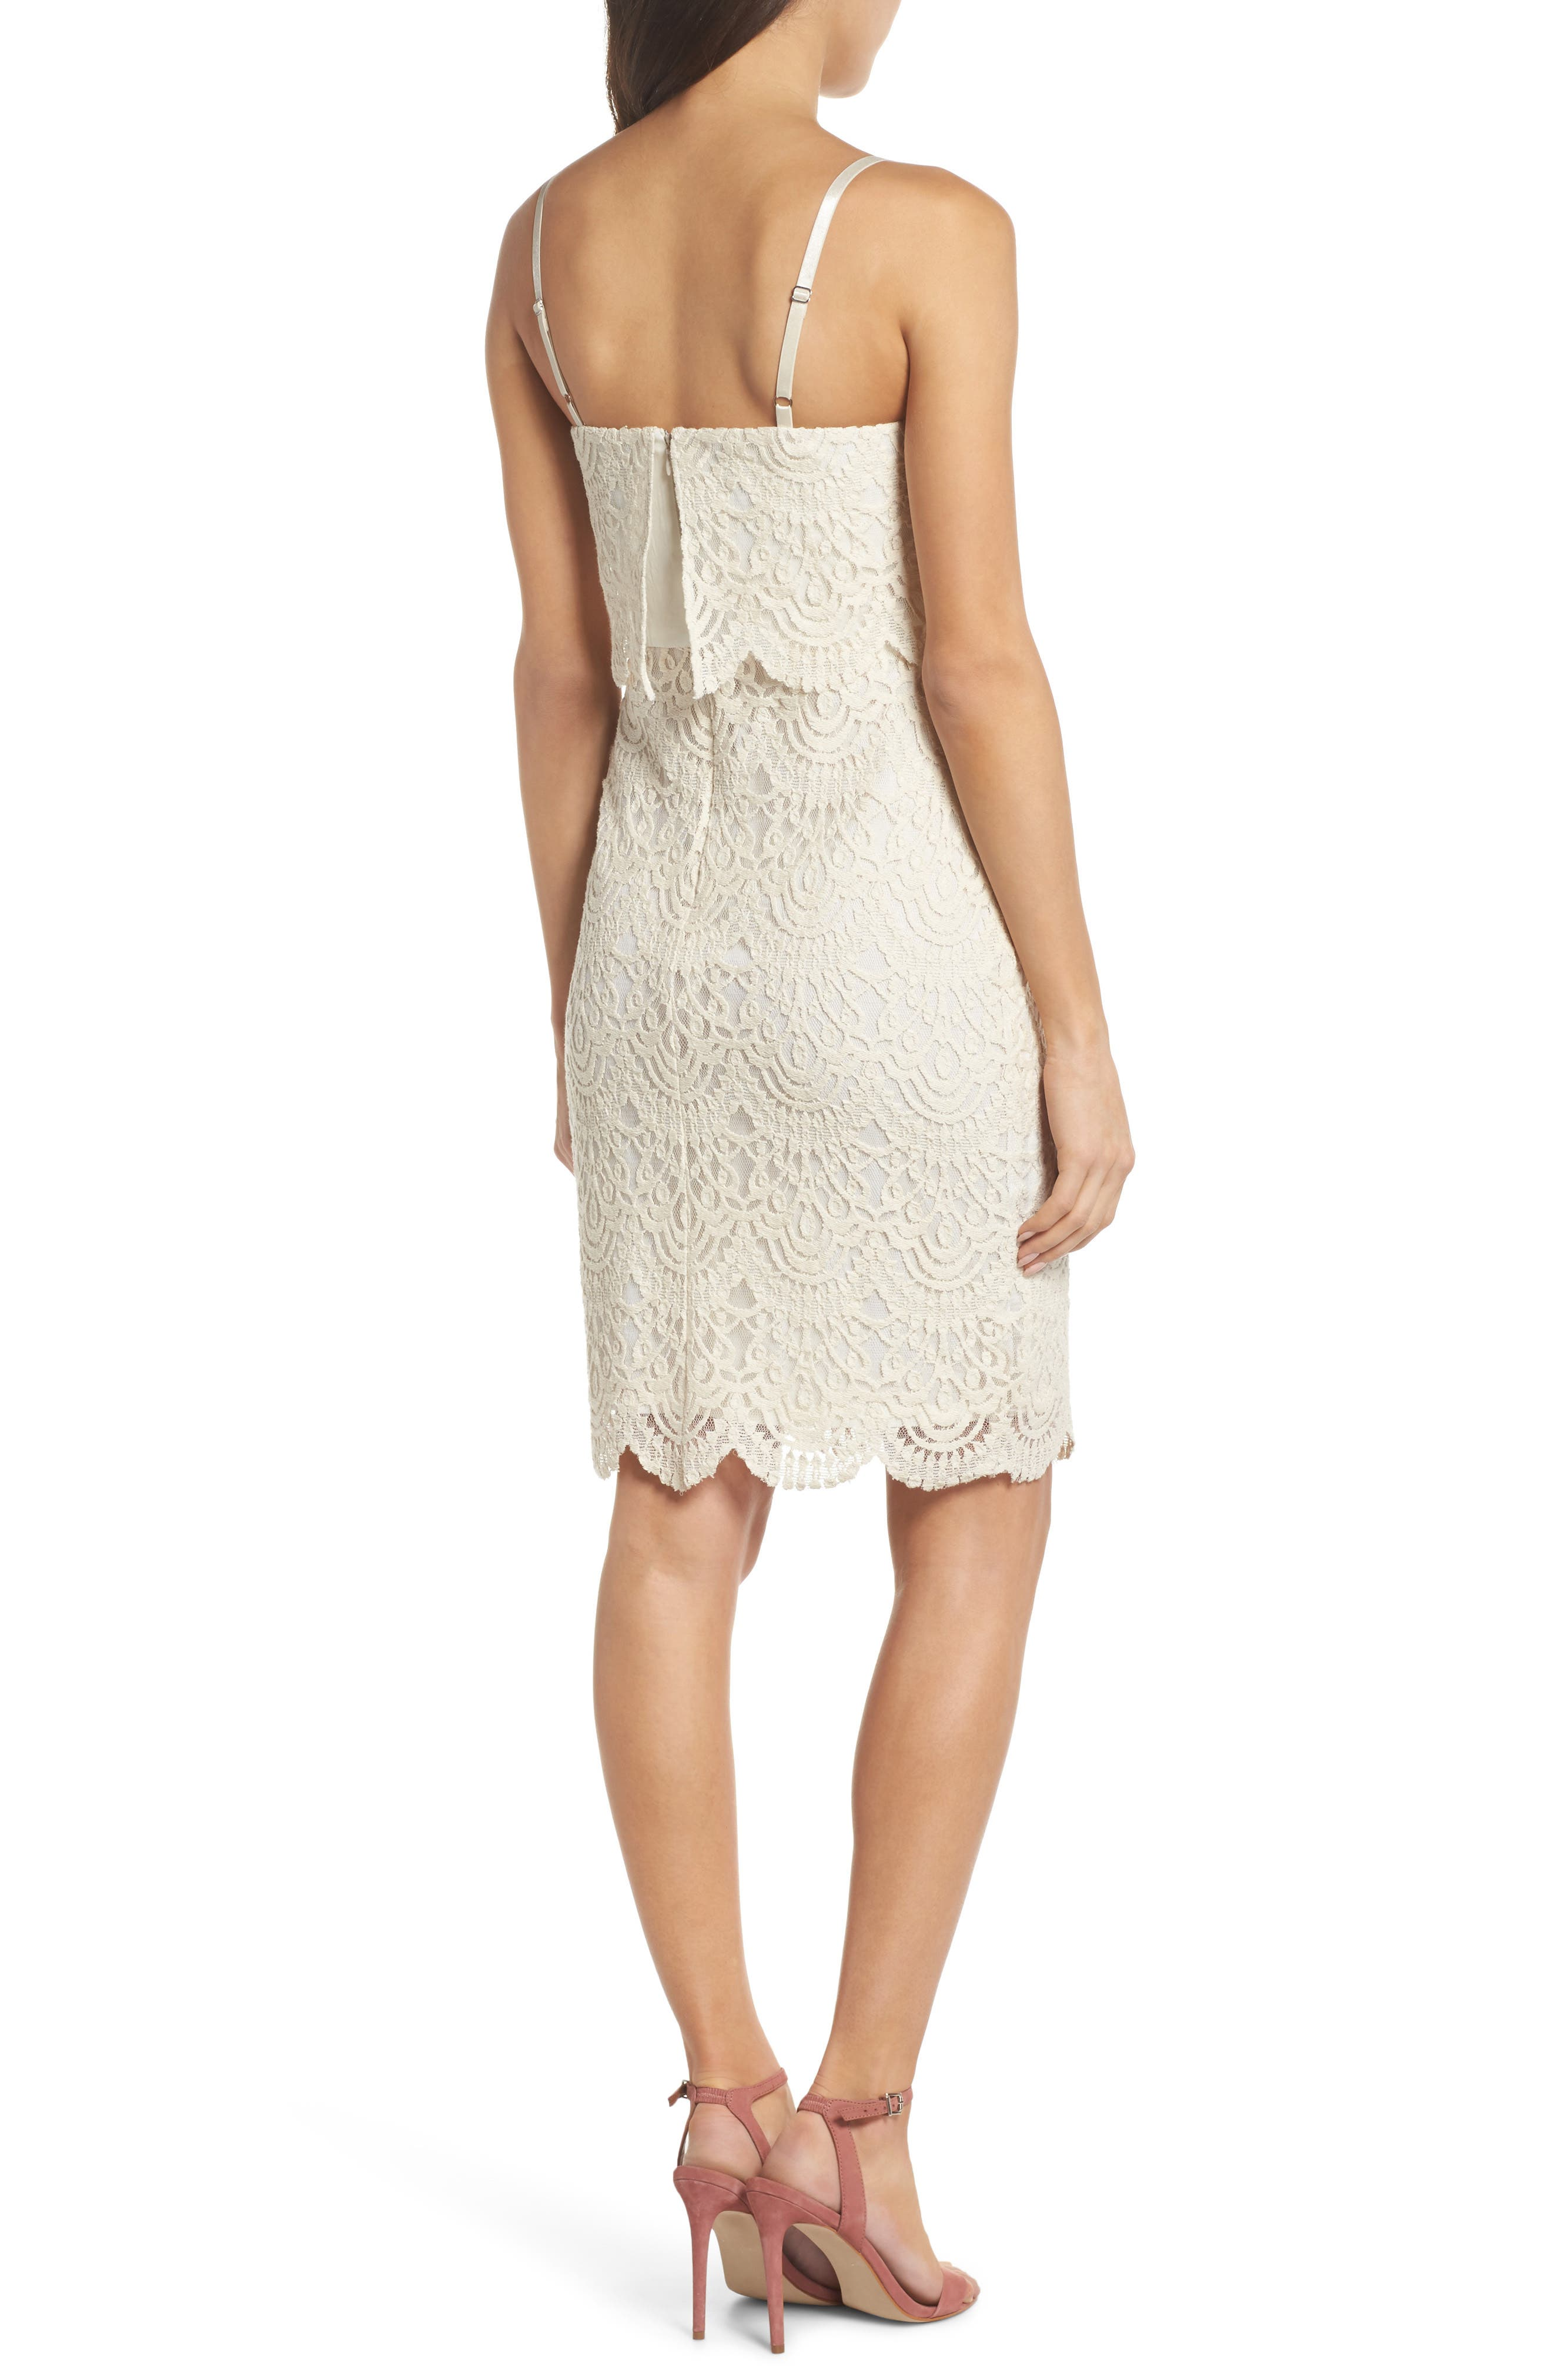 Barnsdall Afternoon Tiered Lace Dress,                             Alternate thumbnail 2, color,                             Vintage Lace